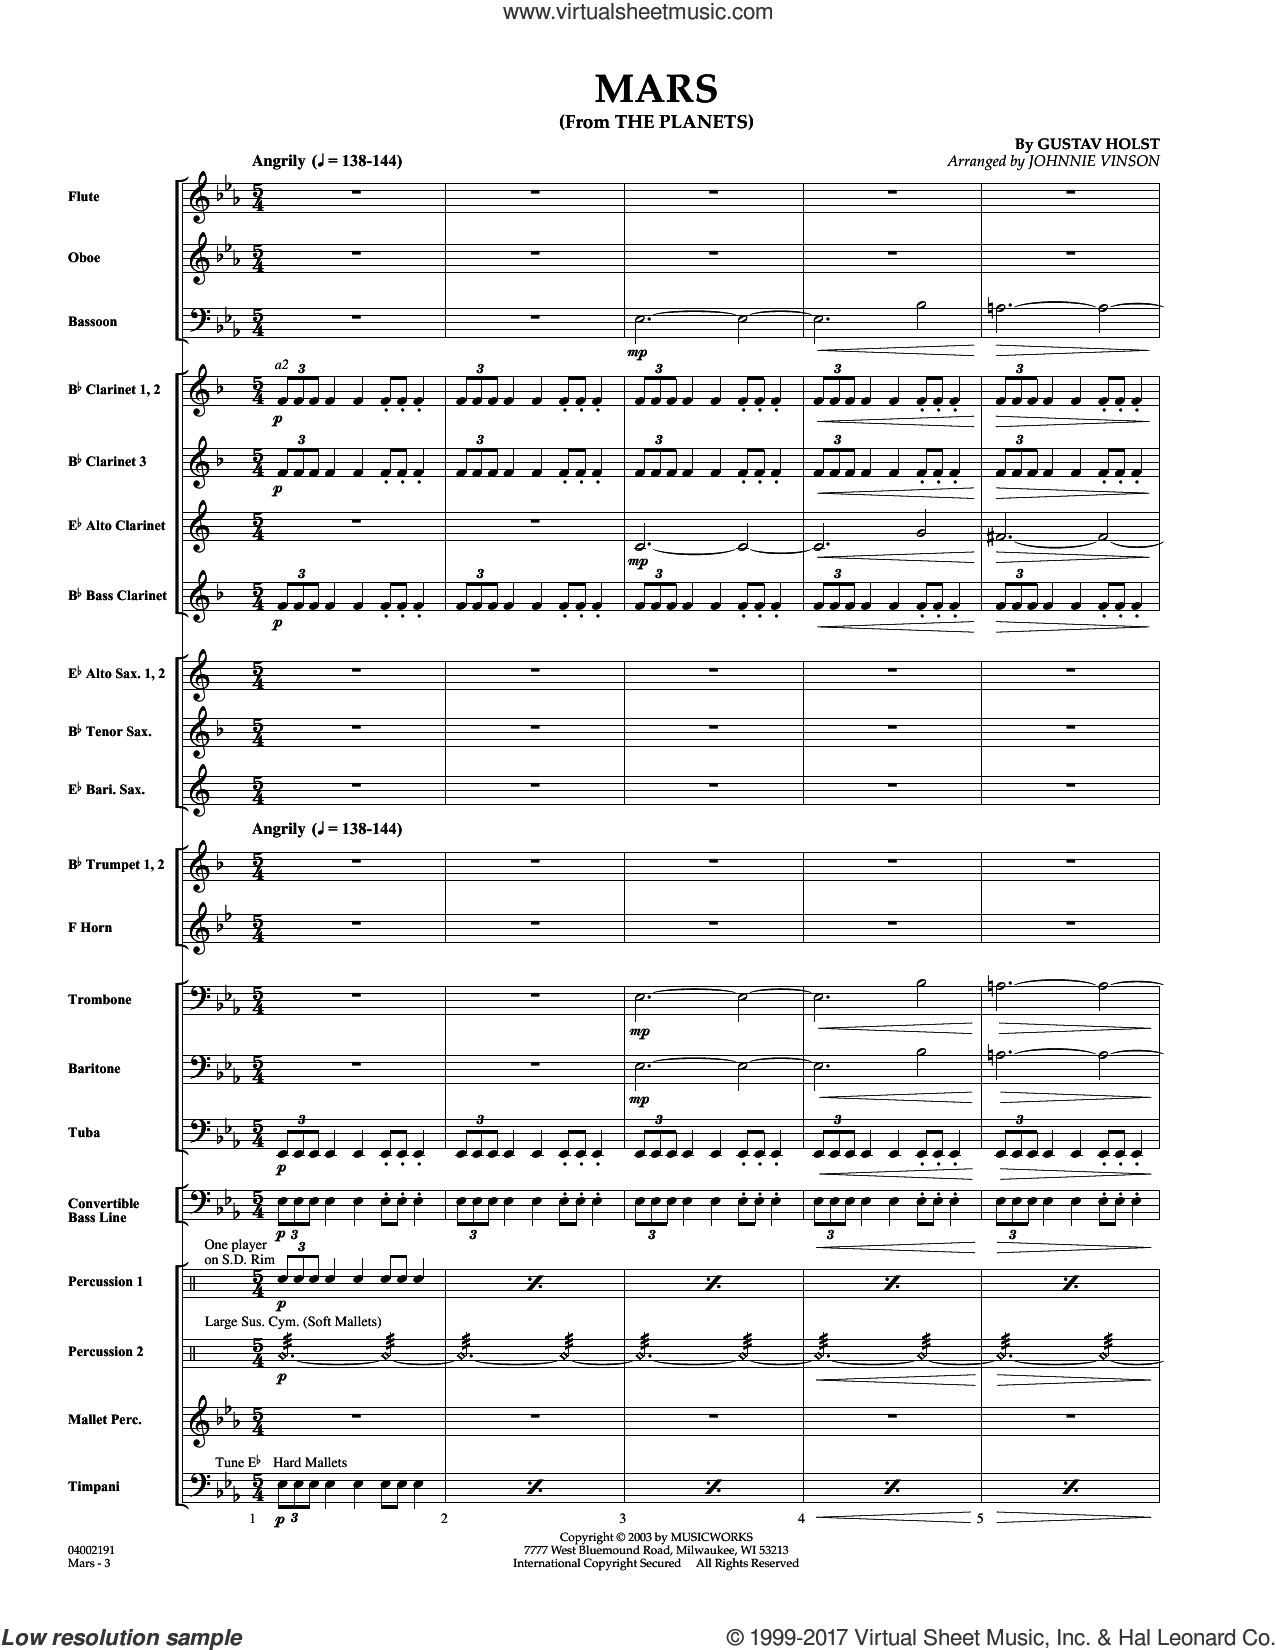 Mars (from The Planets) (COMPLETE) sheet music for concert band by Johnnie Vinson and Gustav Holst, intermediate skill level